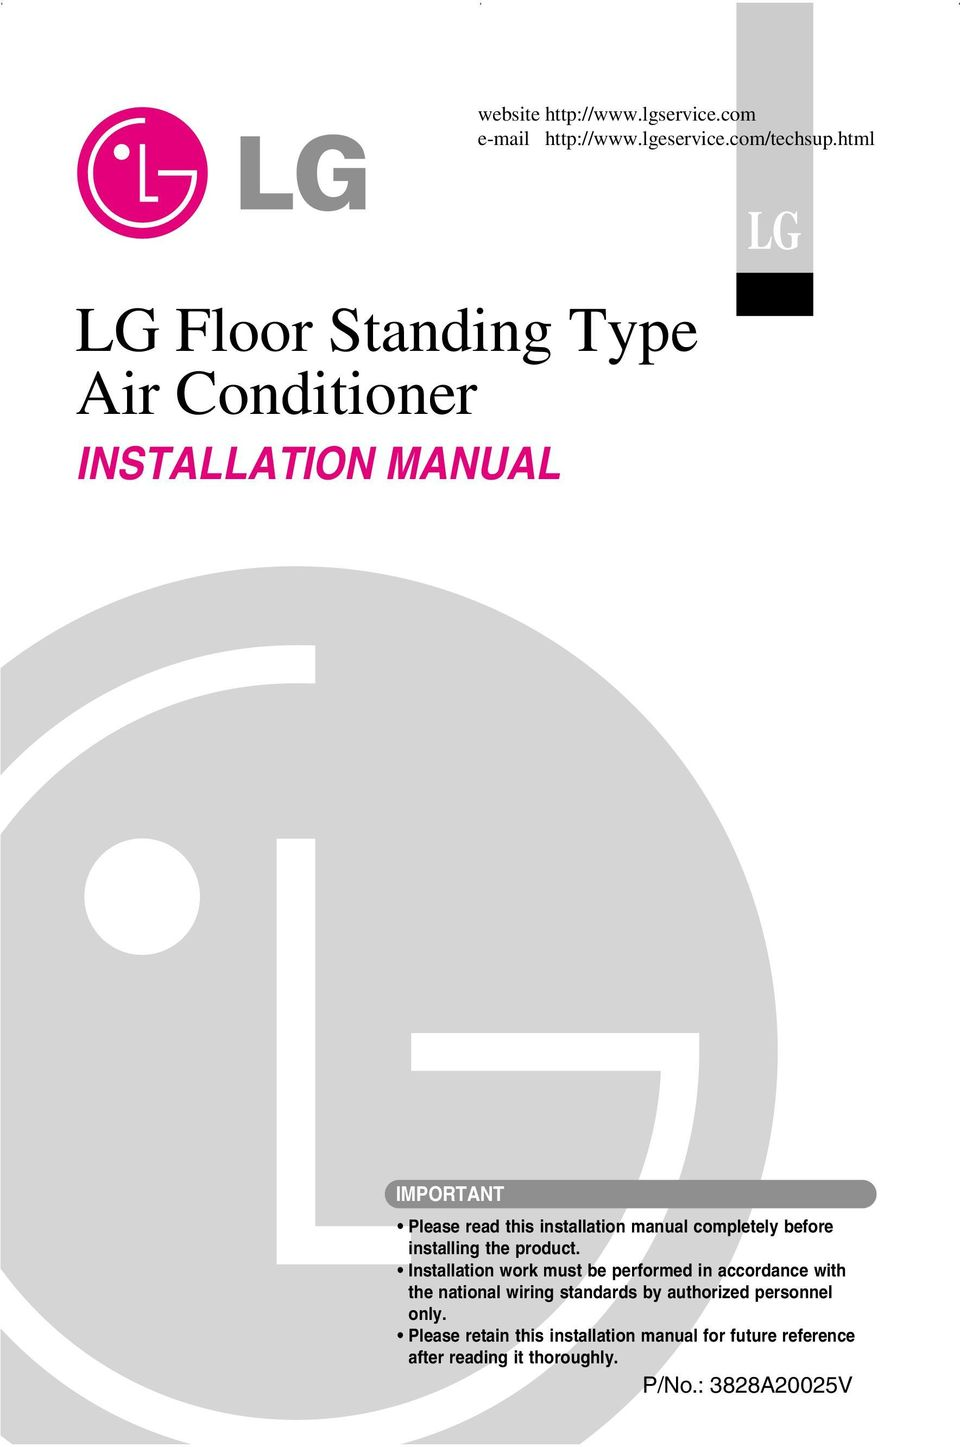 Lg Floor Standing Type Air Conditioner Installation Manual Pdf Free Download